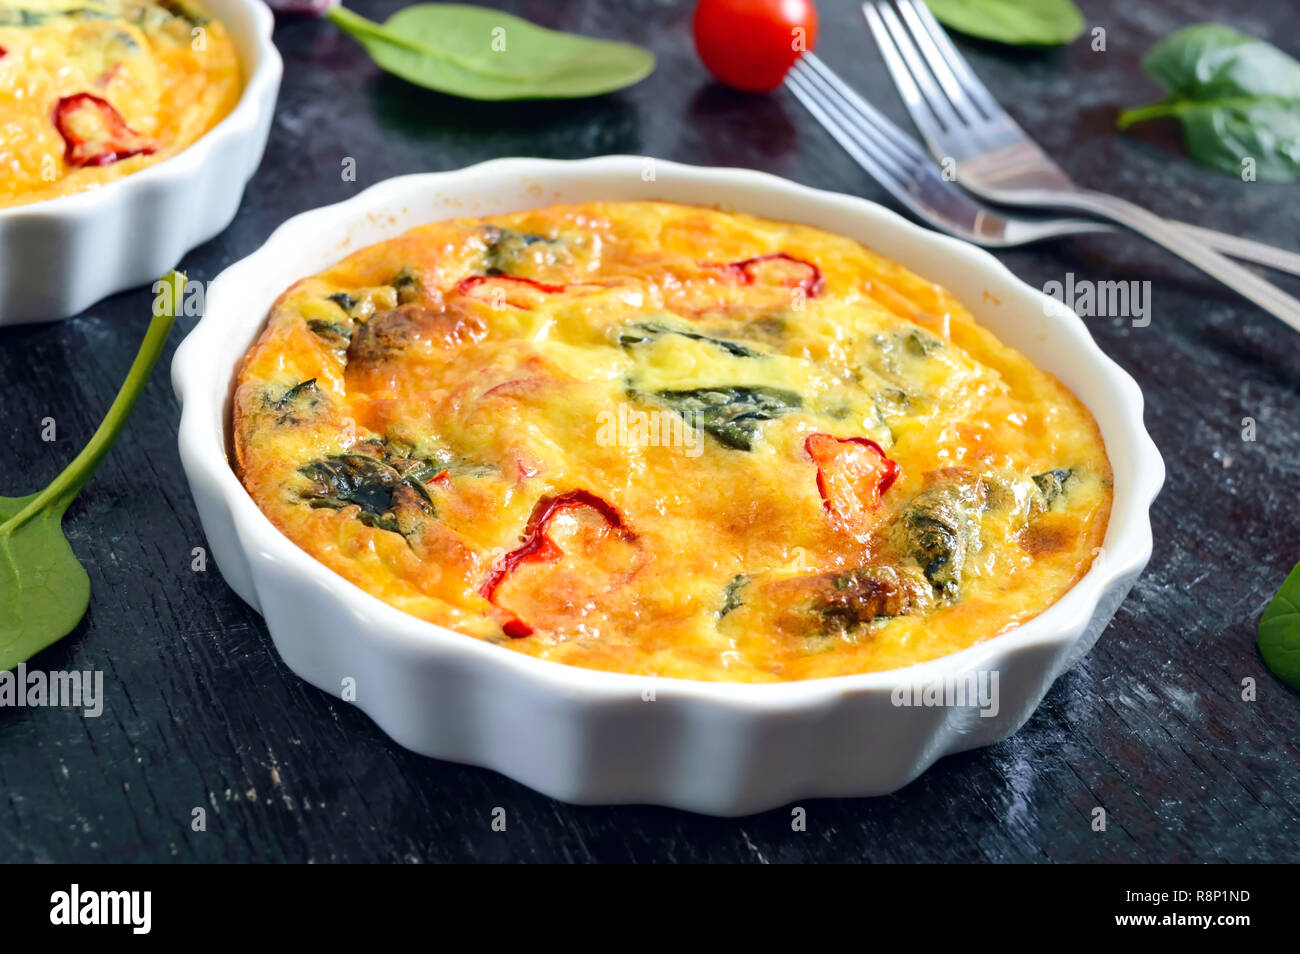 Frittata with fresh vegetables and spinach. Italian omelet in ceramic forms on a black background. - Stock Image